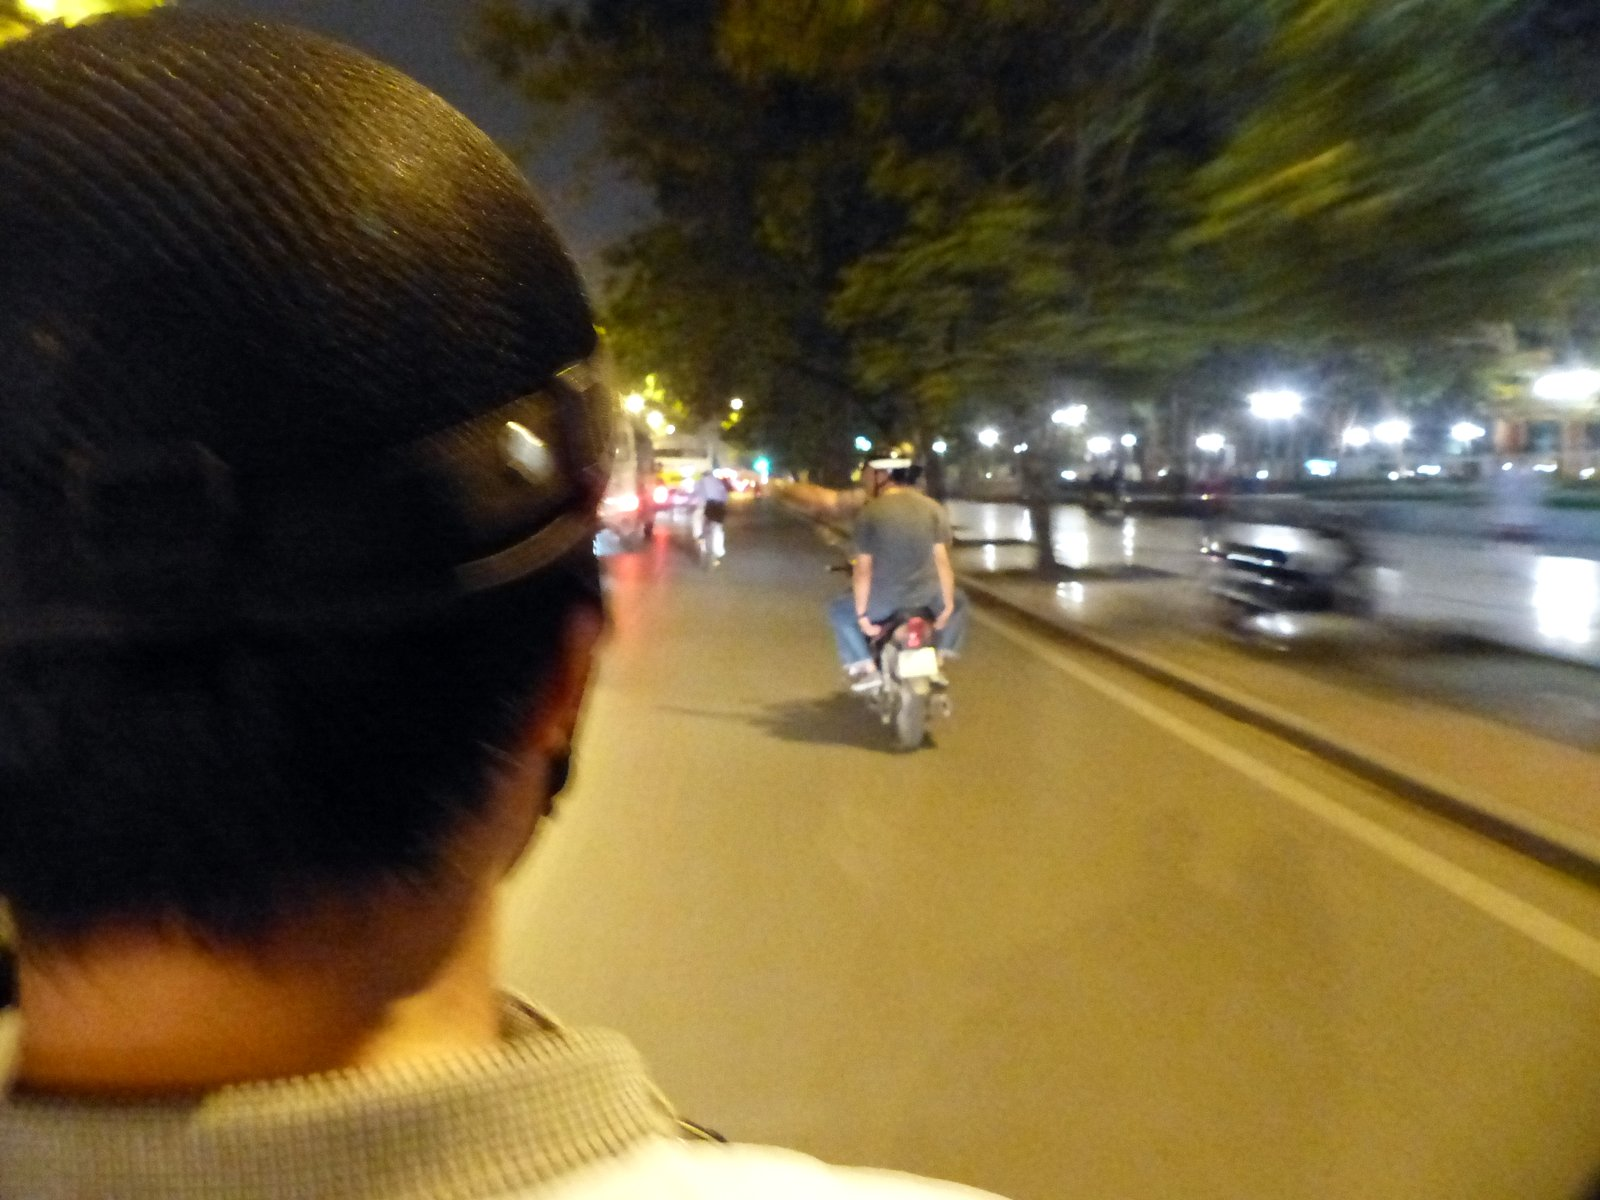 Riding scooters at night on a food tour of Hanoi. We met up with an expat chef, who took us around Hanoi and gave us some insight into the food culture here. Fun!